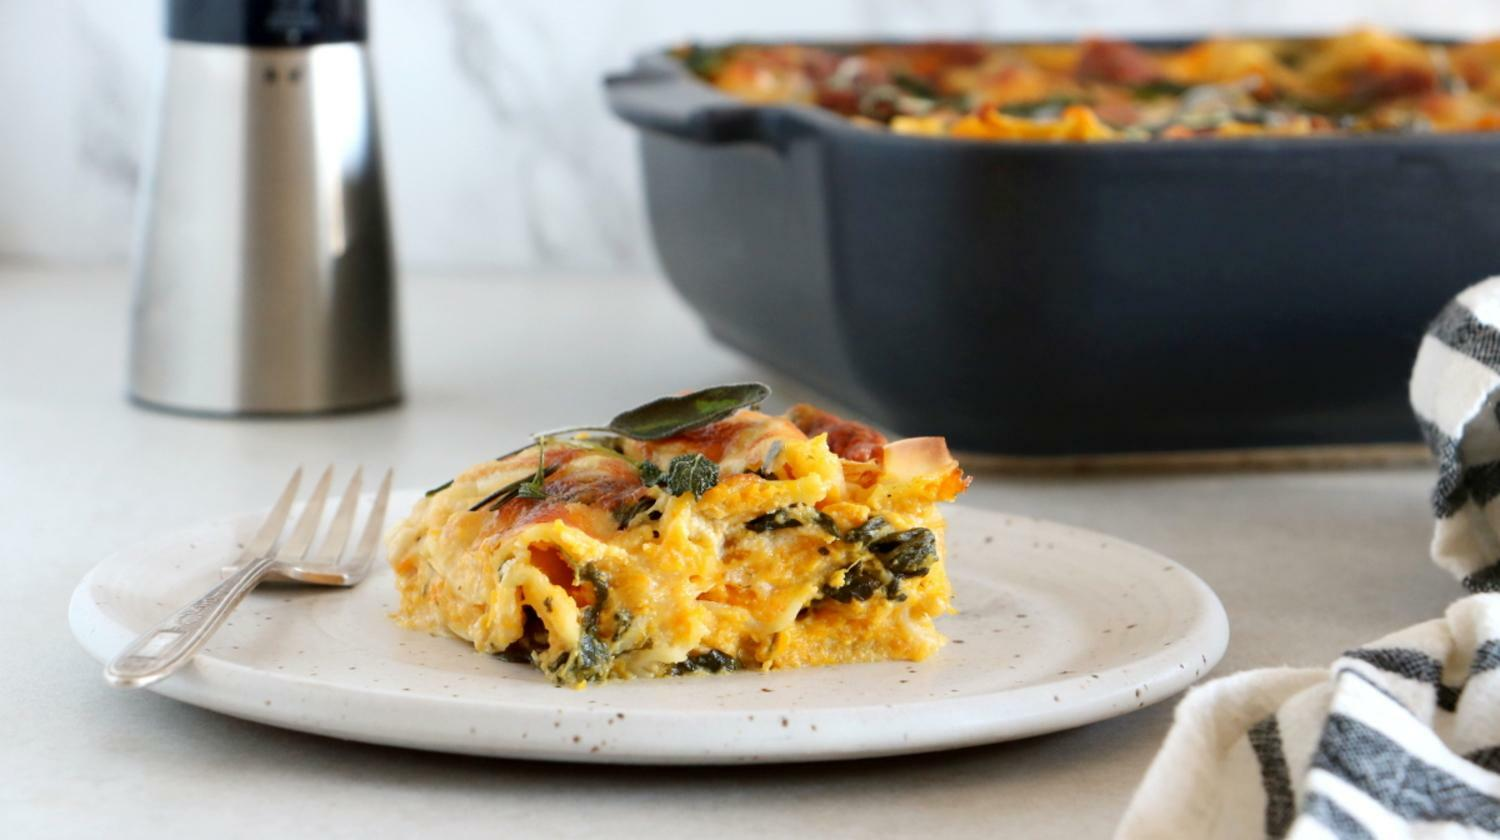 Butternut Squash, Spinach and Goat Cheese Lasagna - Peugeot Saveurs